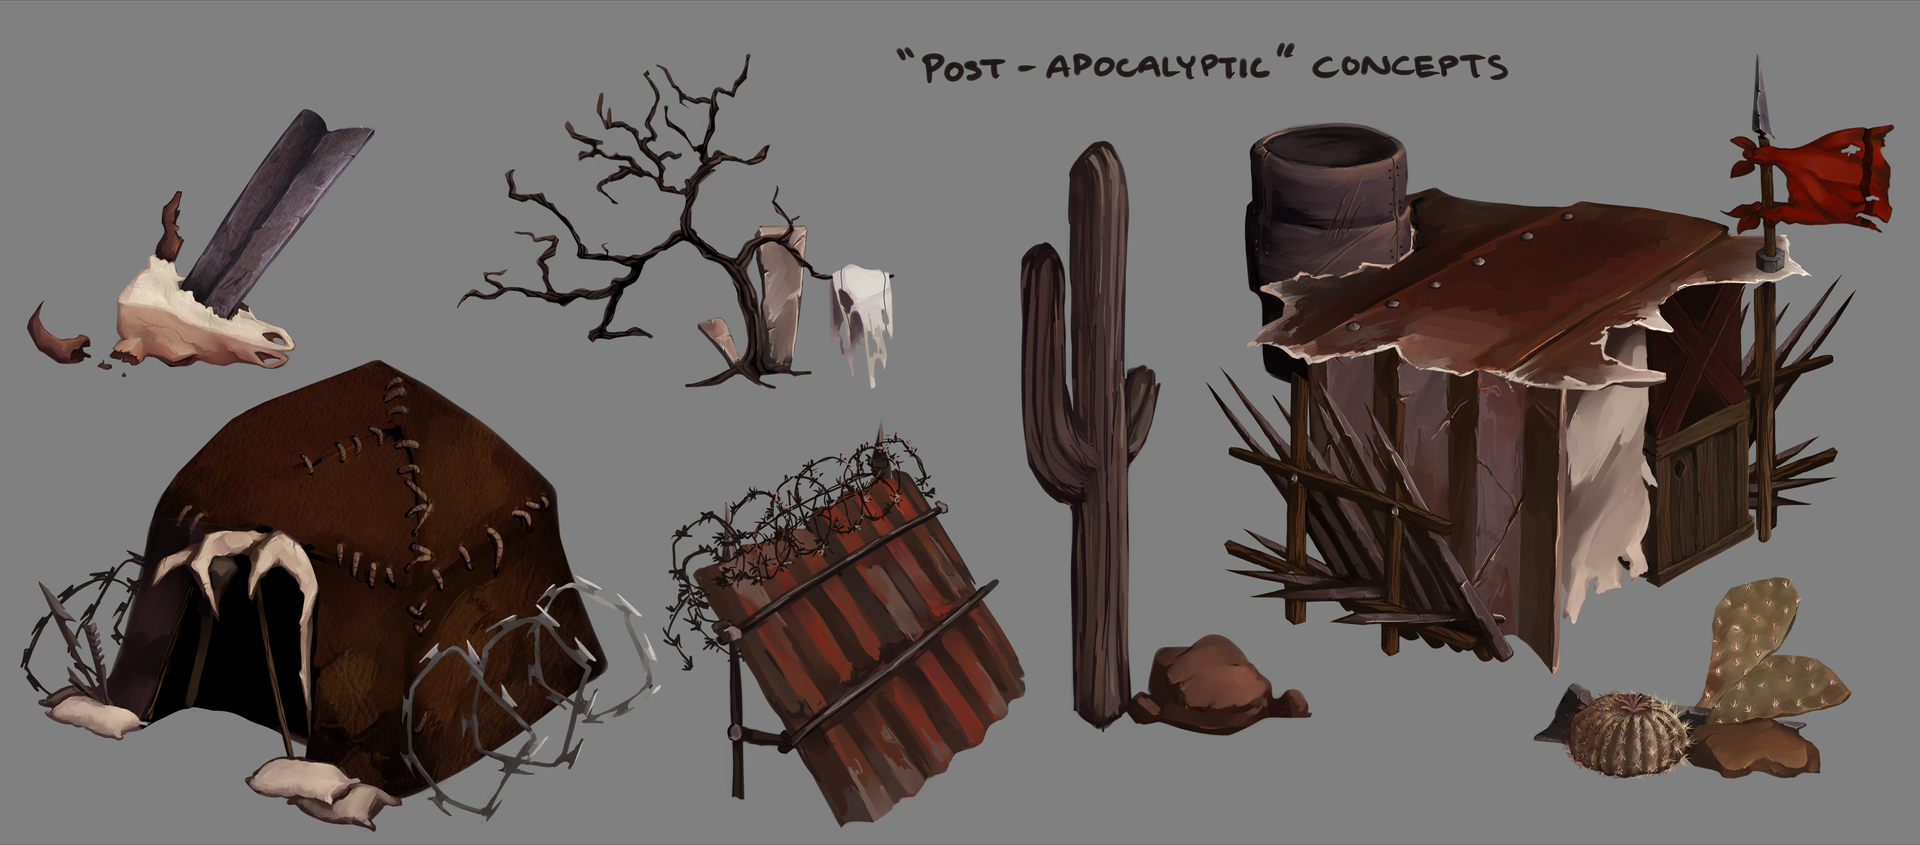 Post-Apocalyptic Concepts